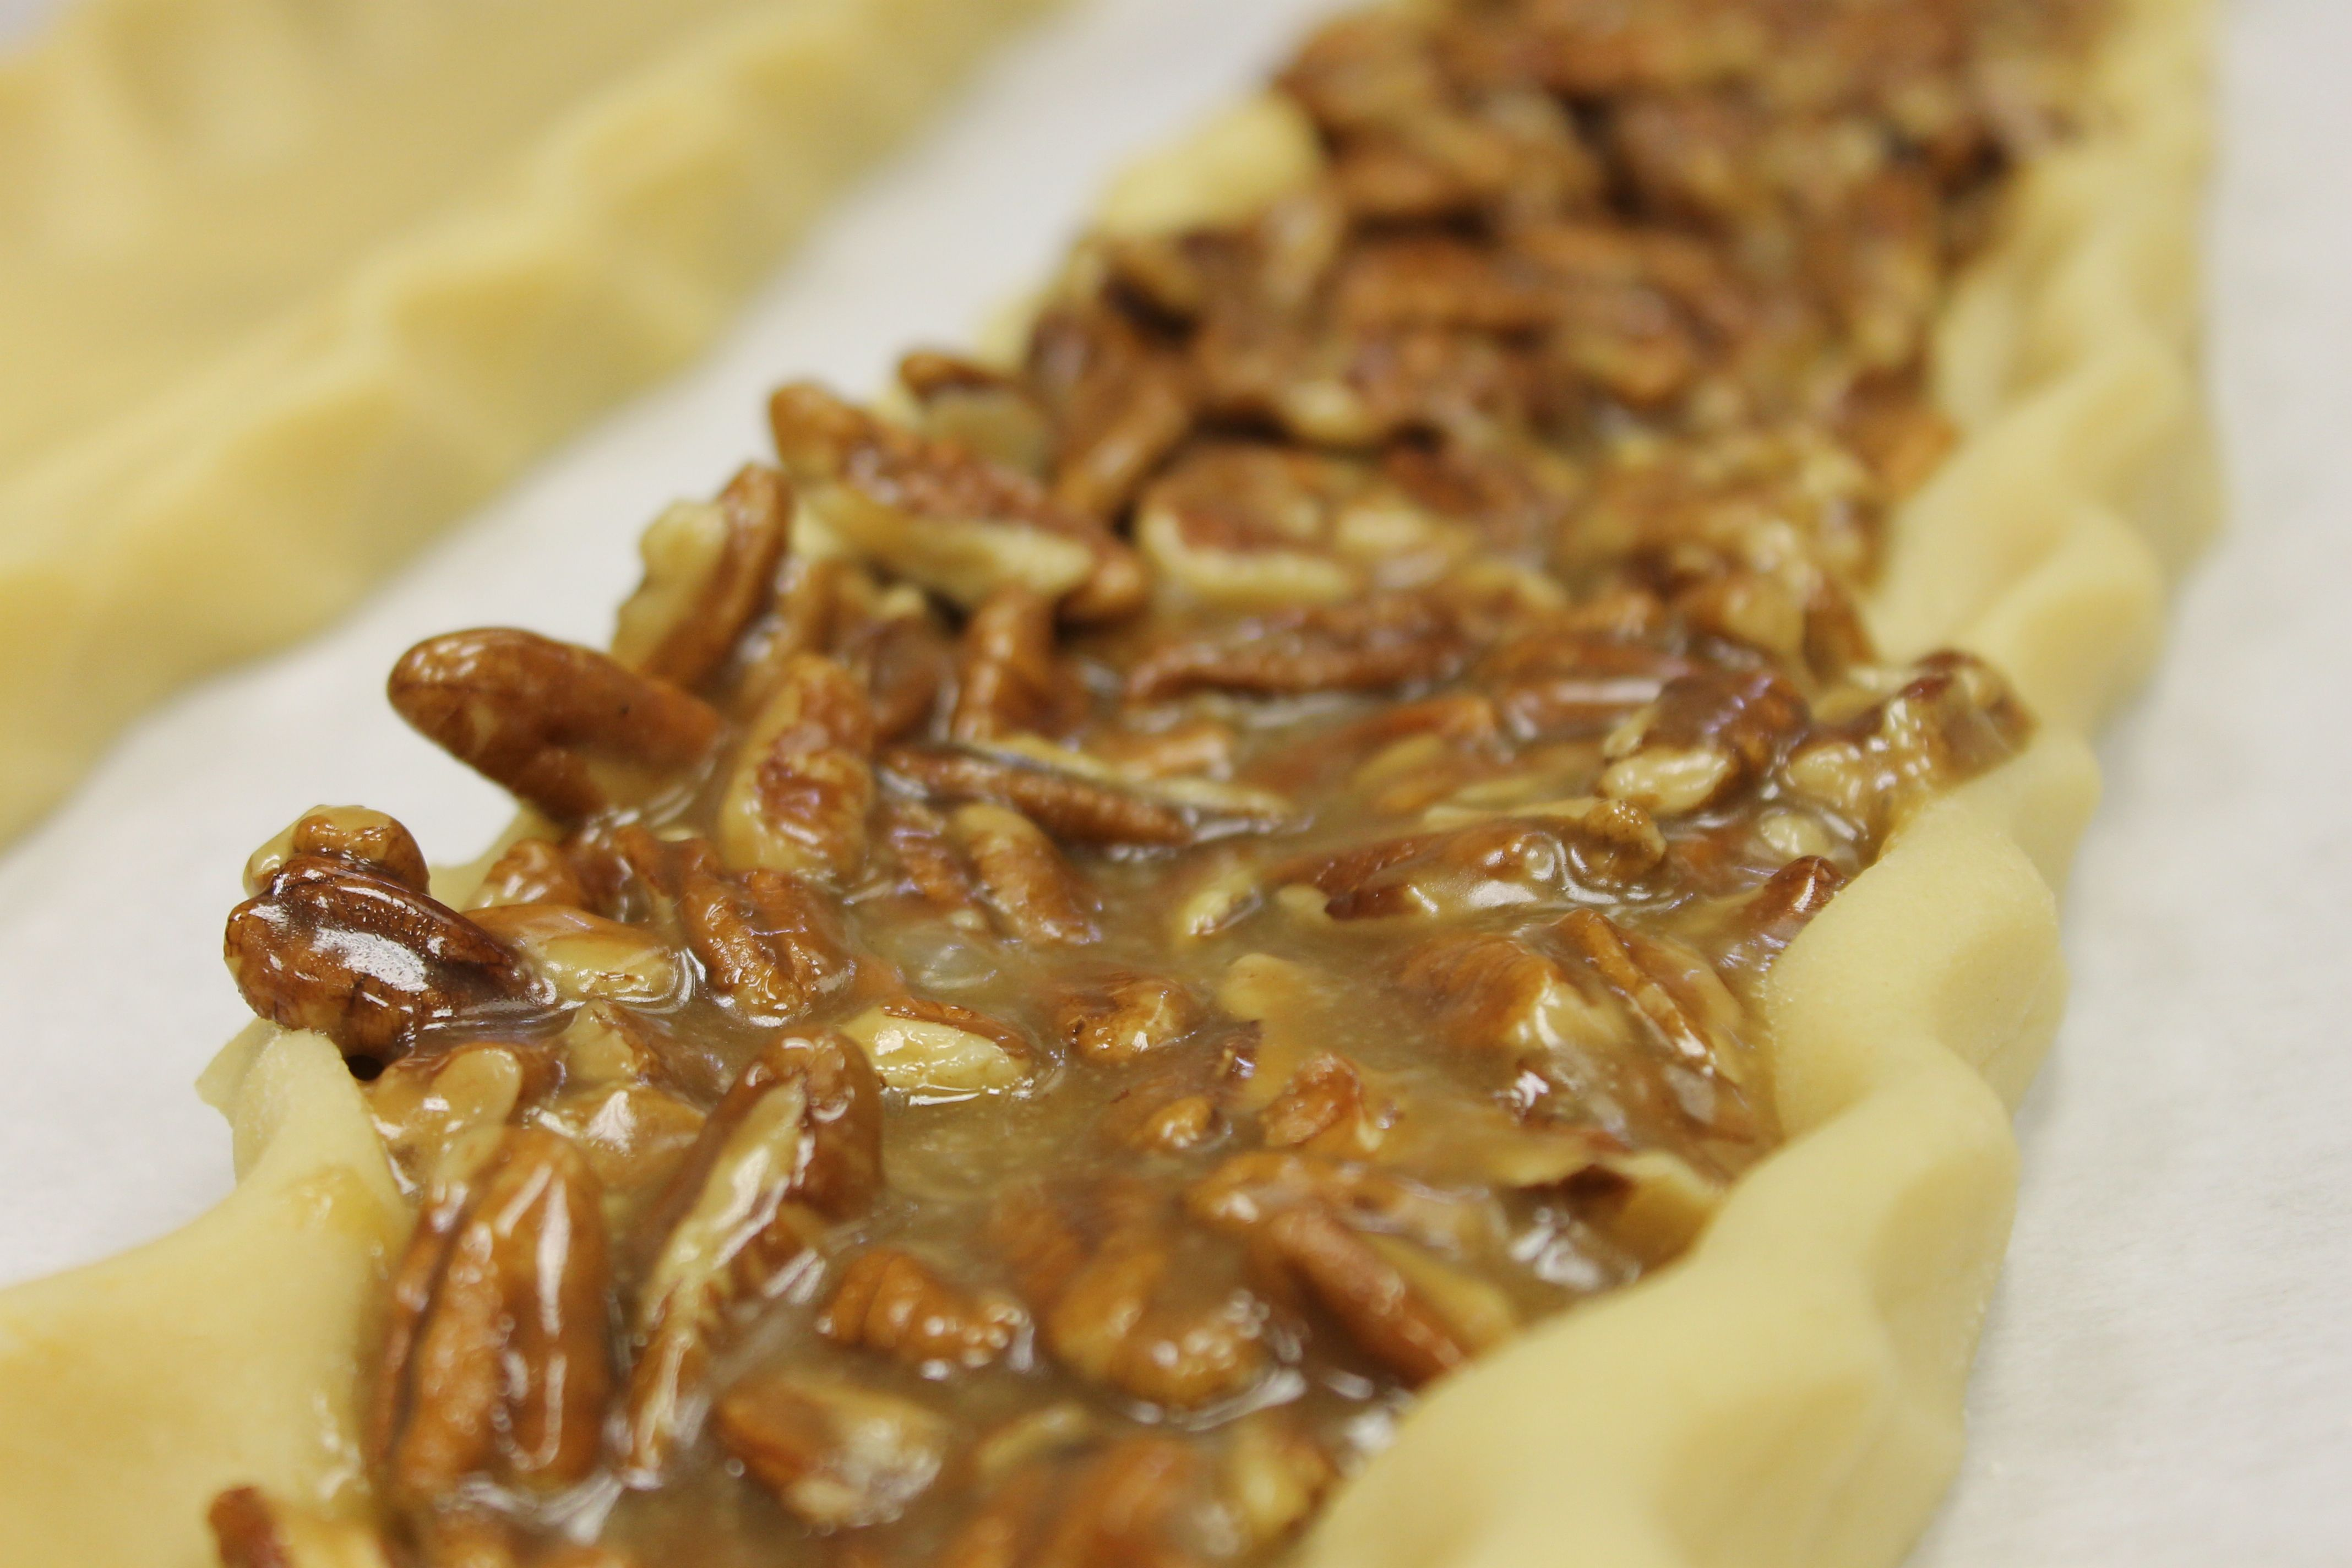 Baking up our pecan wedges just in time for National Nut Day! #carlosbakery